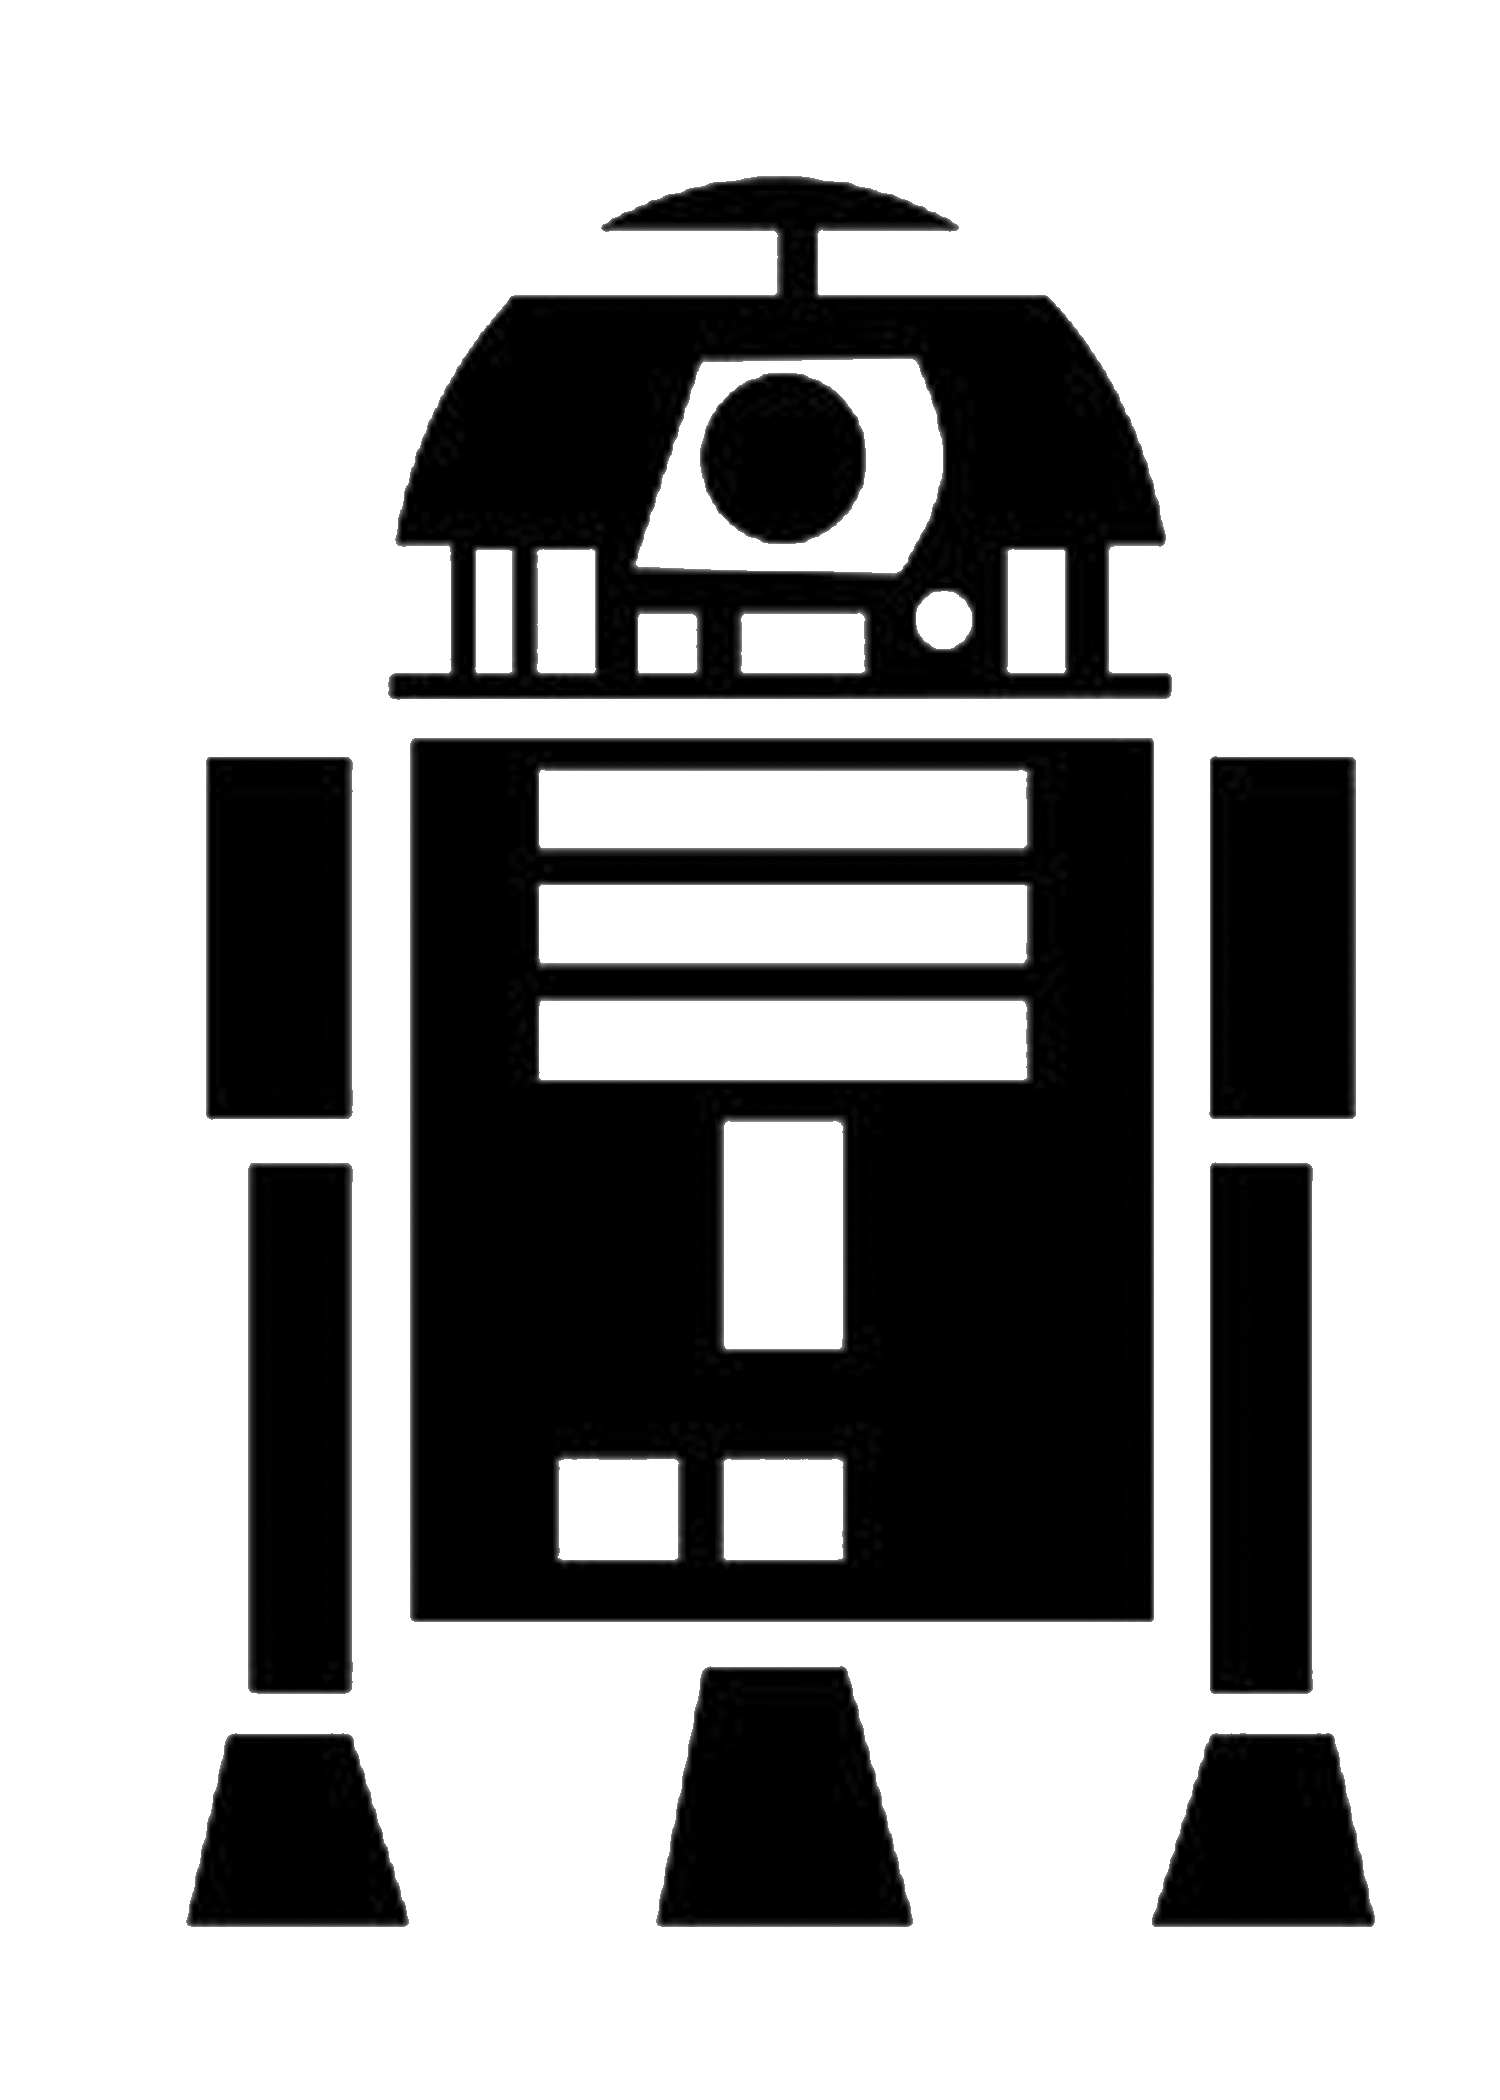 Free star wars clipart image library library Star Wars Wall Art ! - Tatertots and Jello image library library